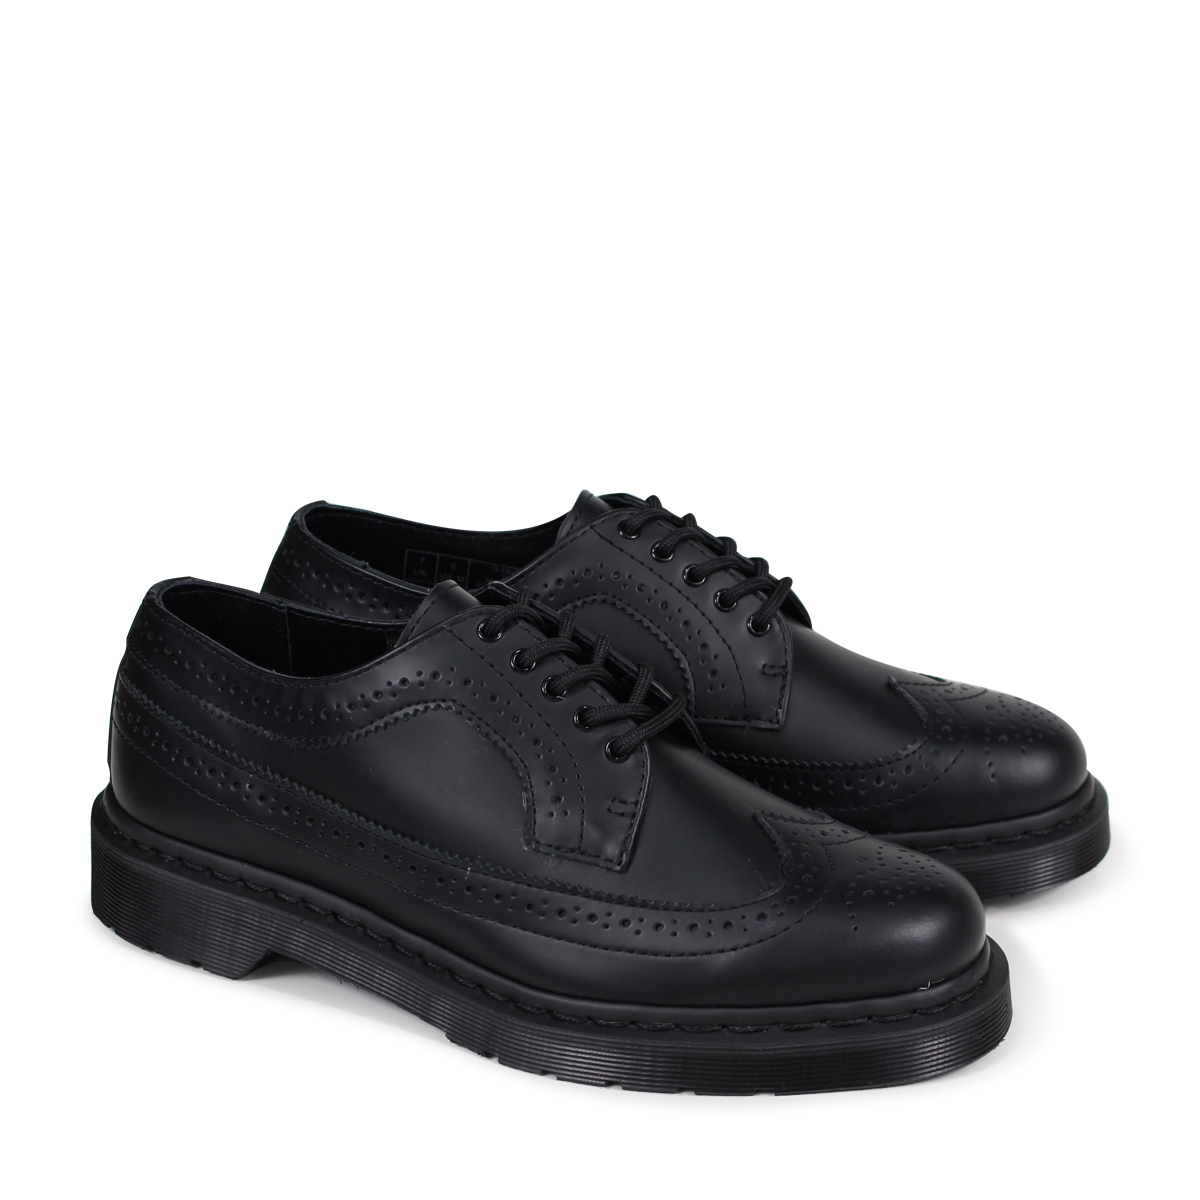 53206b073d41 Dr.Martens MONO BROGUE SHOES doctor Martin wing tip 3989 men s lady s shoes  black R22916001  load planned Shinnyu load in reservation product 5 8 ...